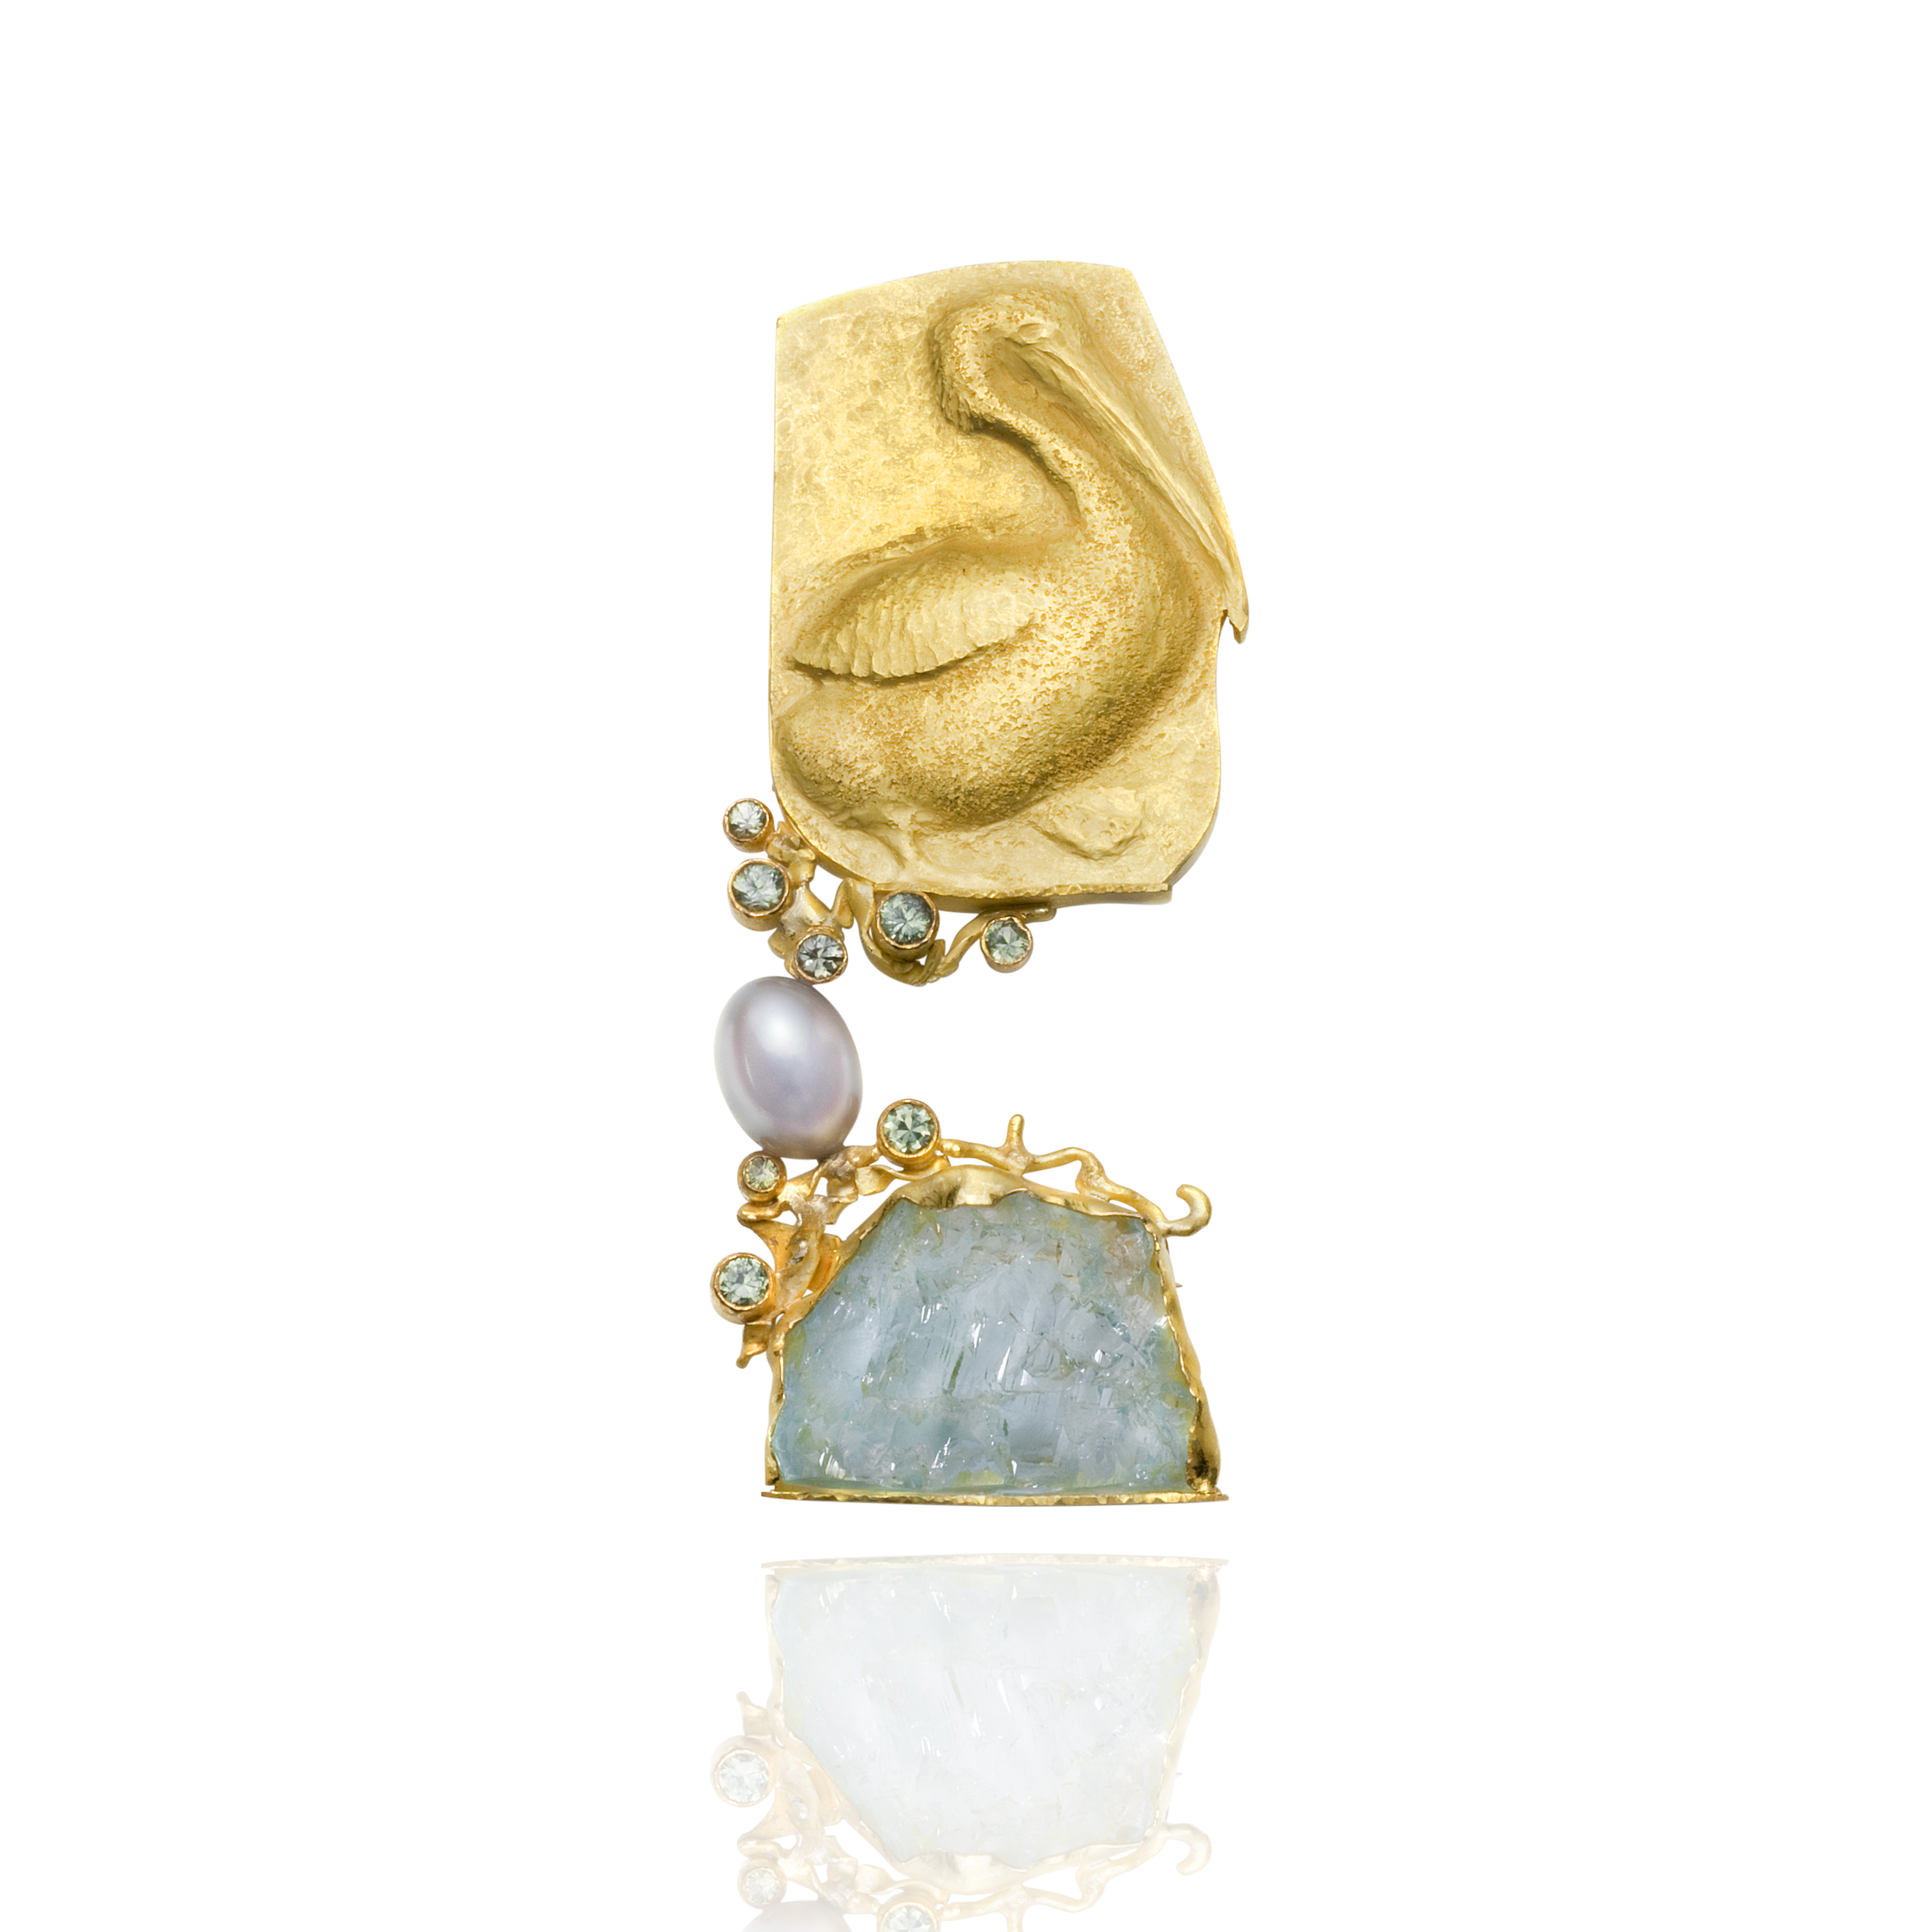 """Baby Pelican"" by Linda Kindler-Priest. Two-part brooch in 14k yellow gold, green sapphires, pearl, and aquamarine rough. Photo used with permission."